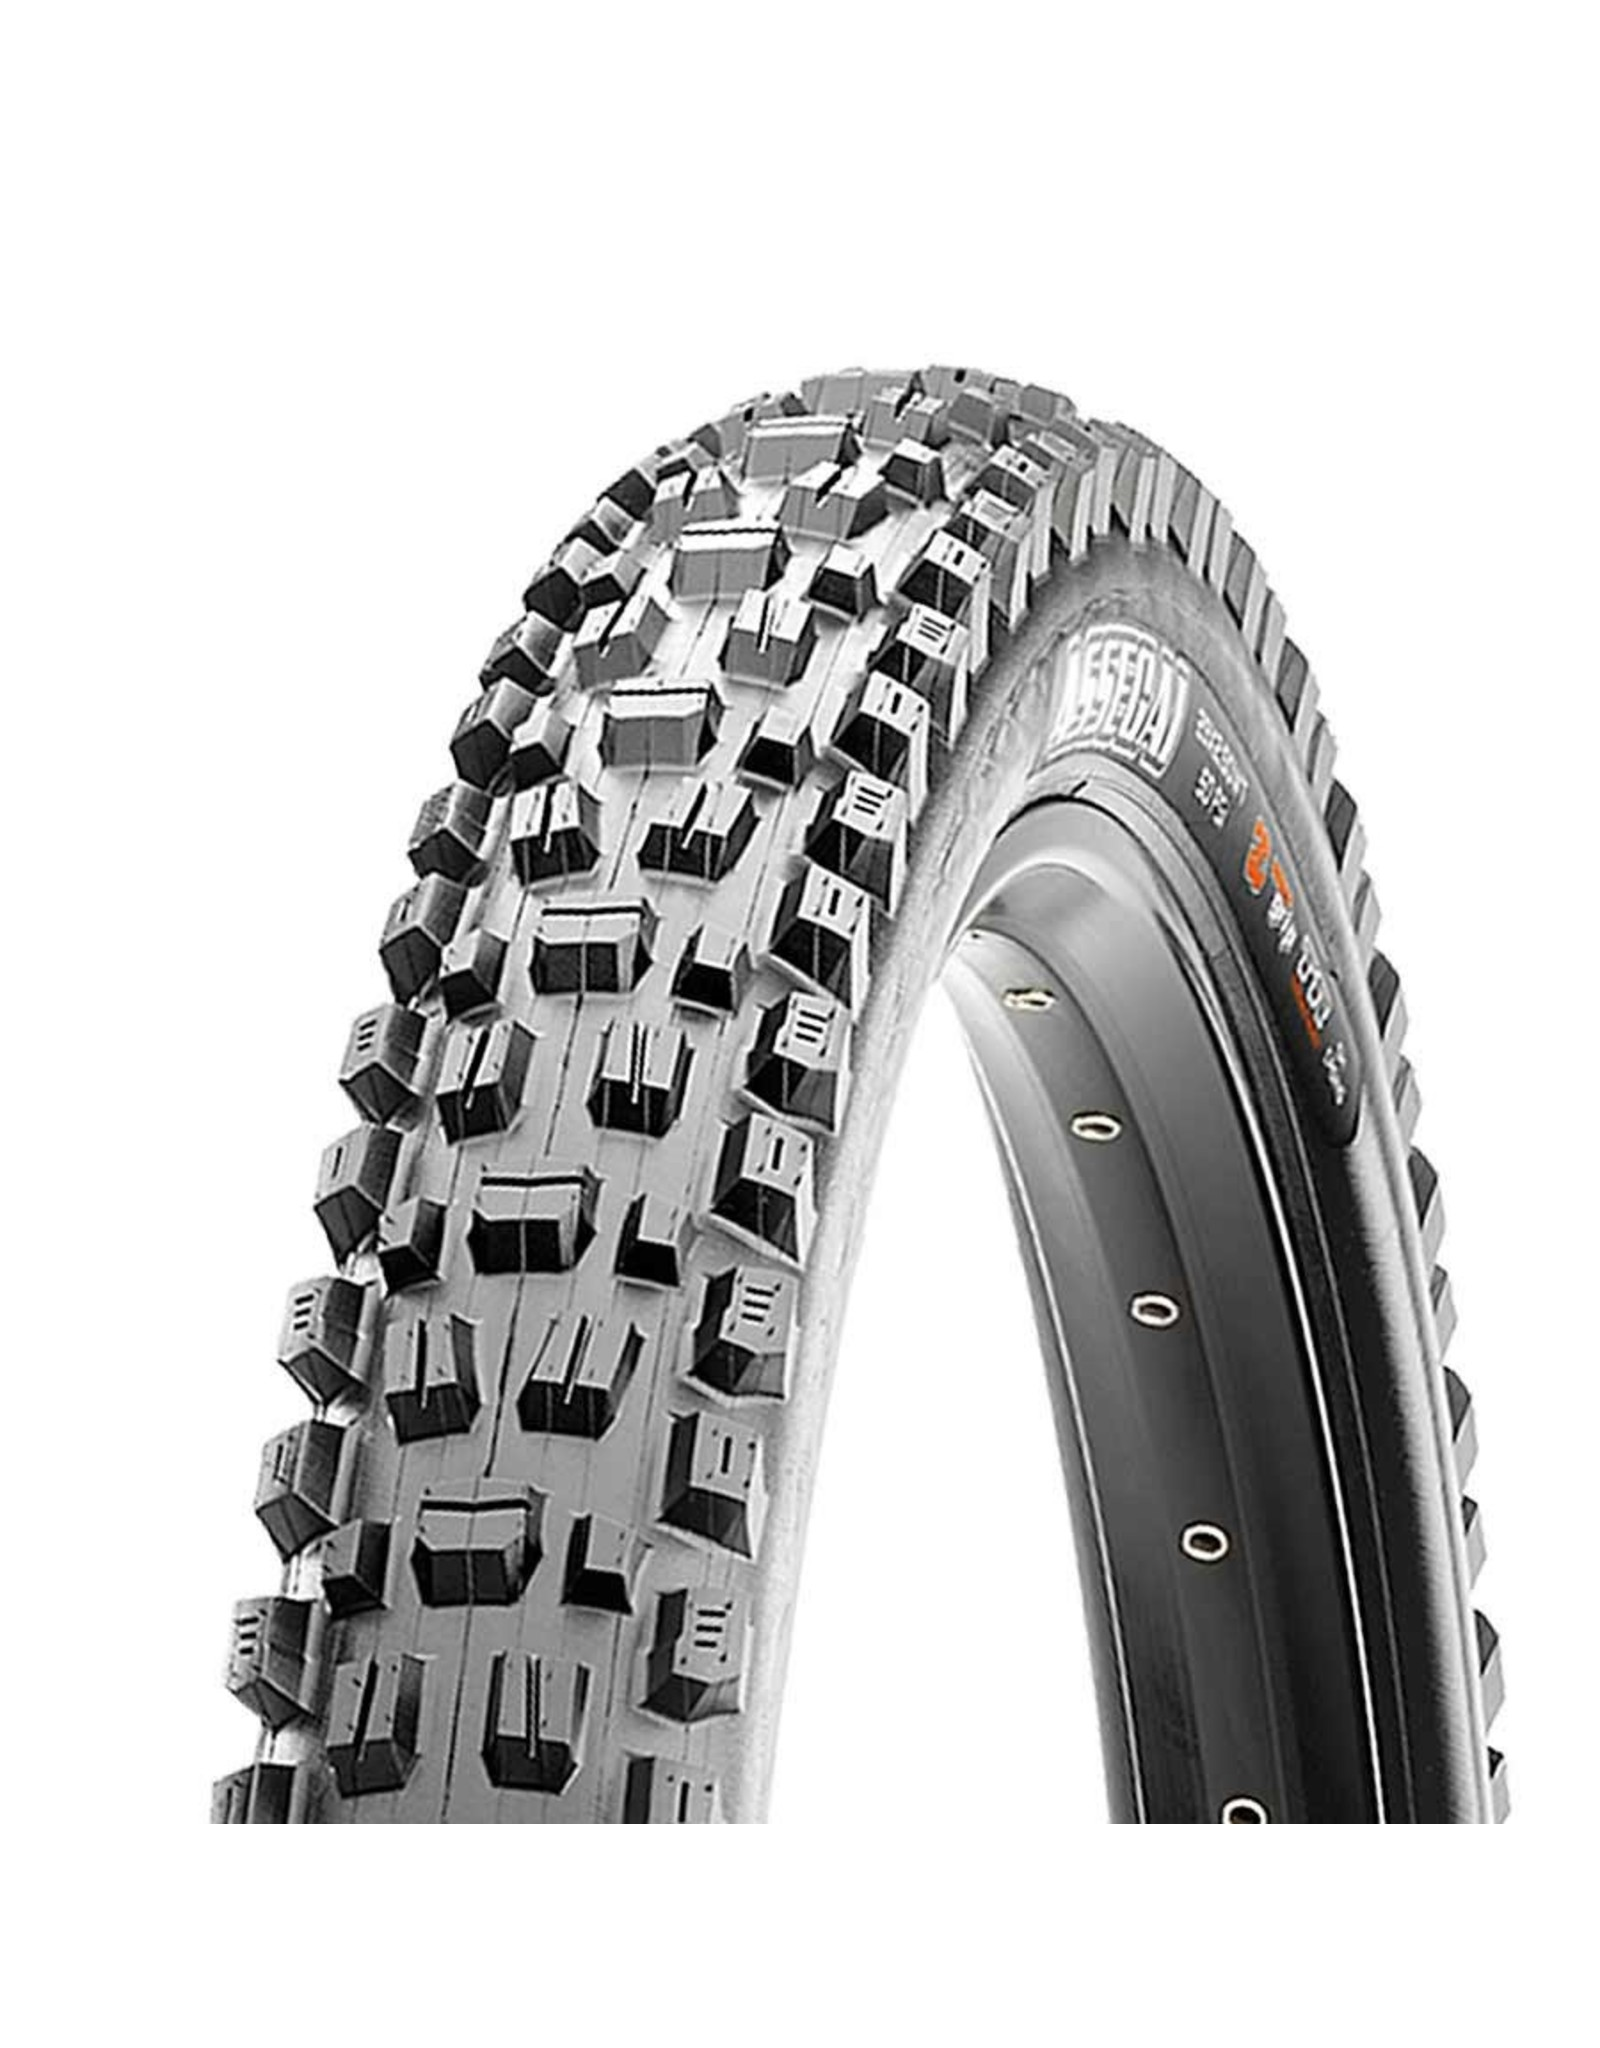 Maxxis Assegai, Tire, 27.5''x2.50, Folding, Tubeless Ready, 3C Maxx Terra, EXO, Wide Trail, 60TPI, Black